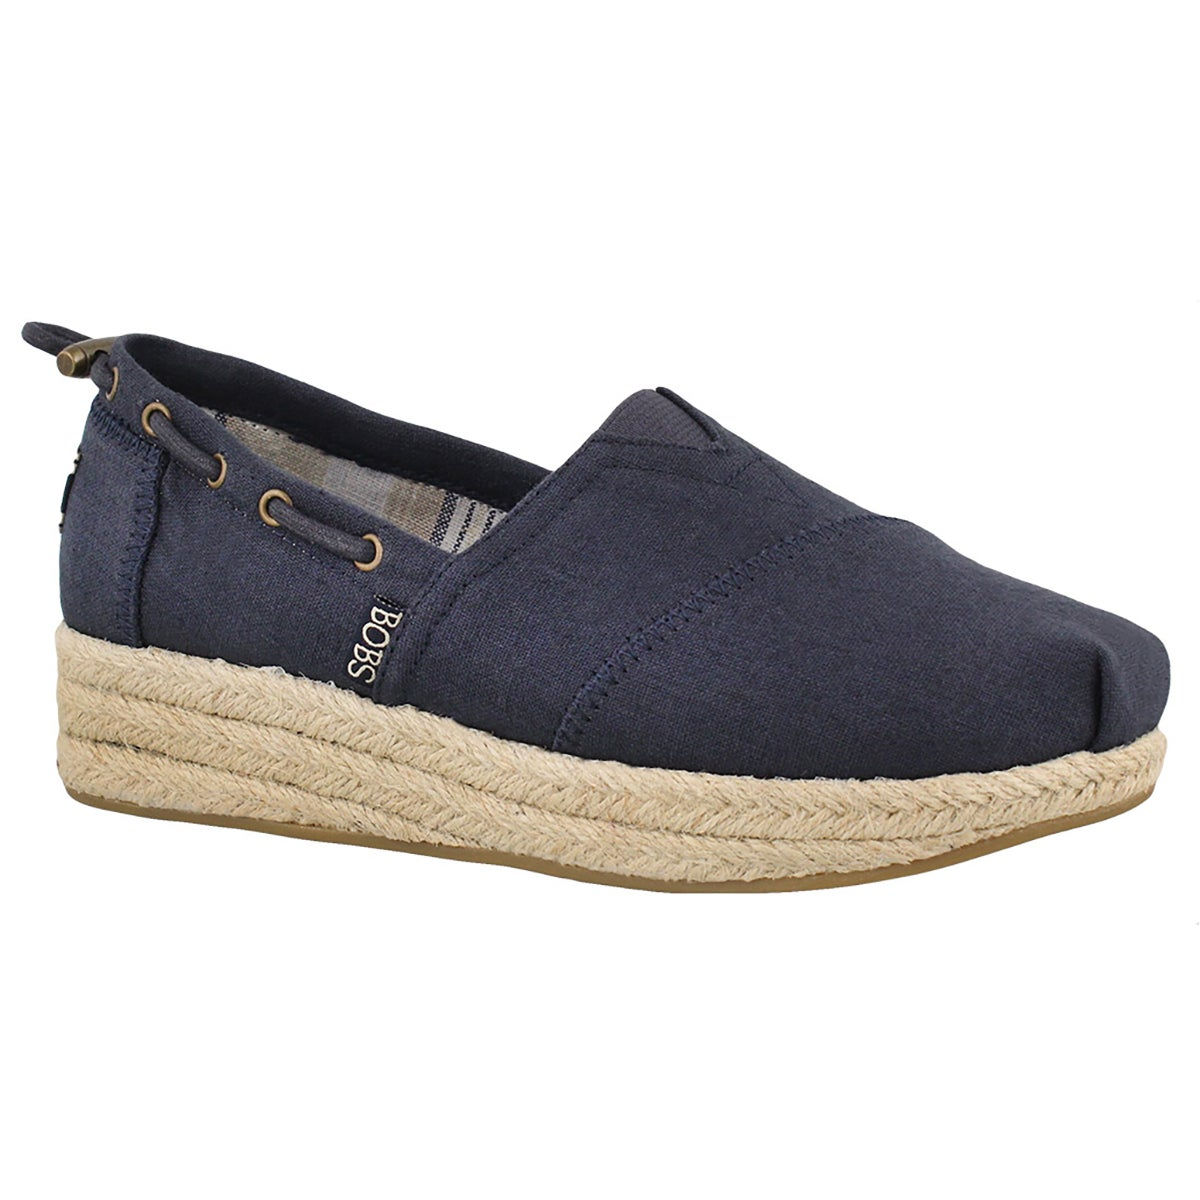 Women's HIGHTLIGHTS SET navy slip on wedges